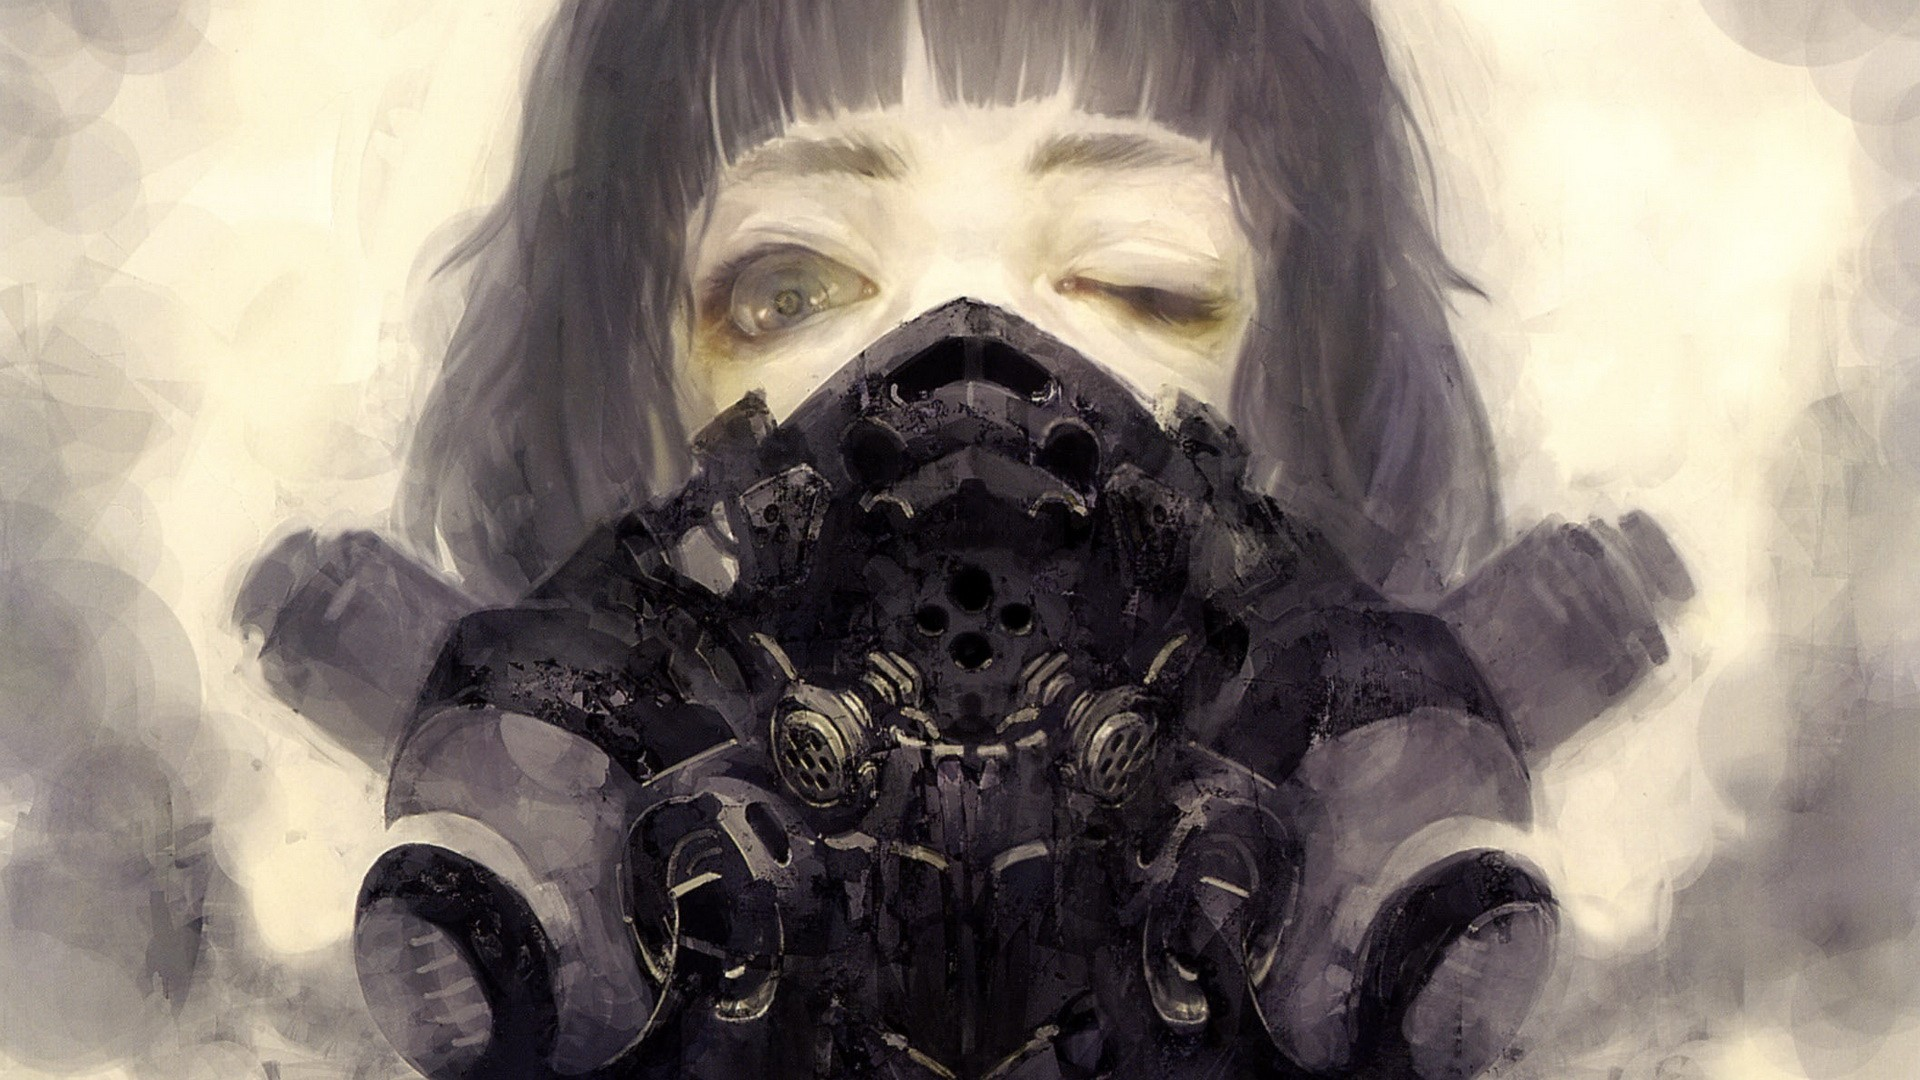 creepy anime girl in a weird scary-looking mask, black hair, brown eyes.